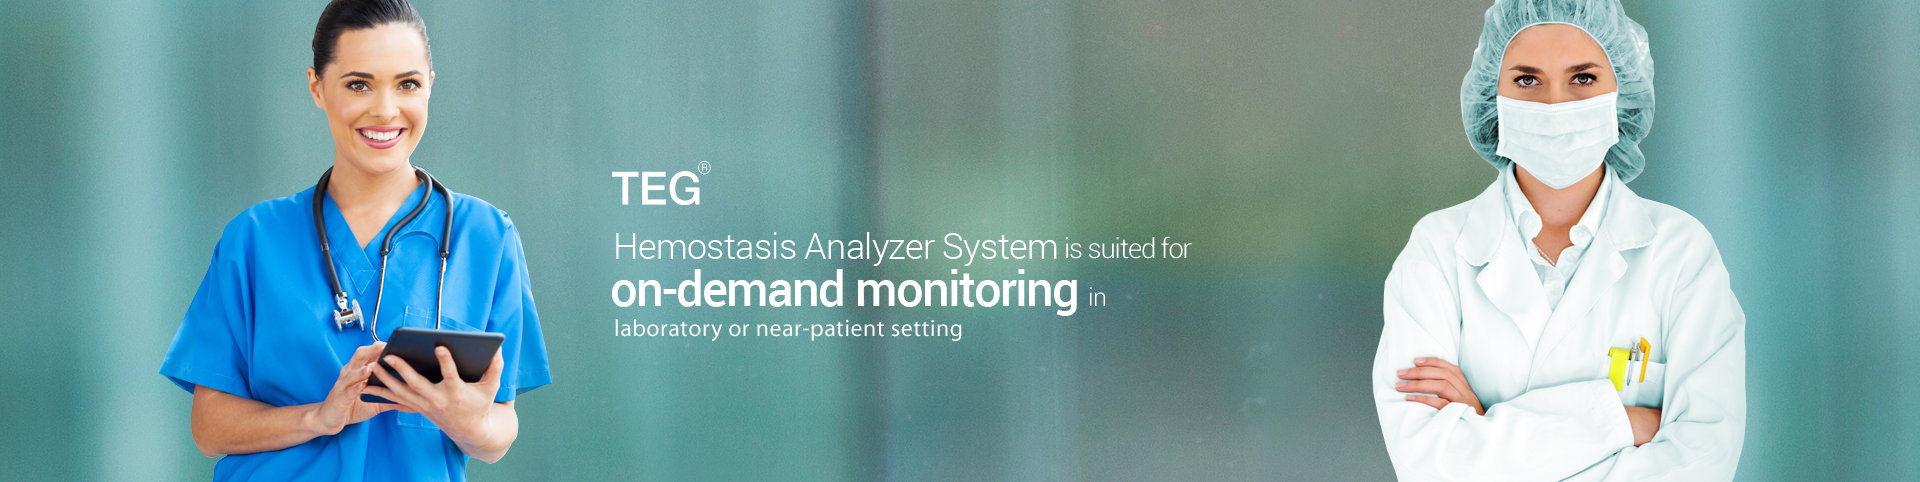 TEG Hemostasis Analyzer System is suited for on-demand monitoring in laboratory or near-patient settings